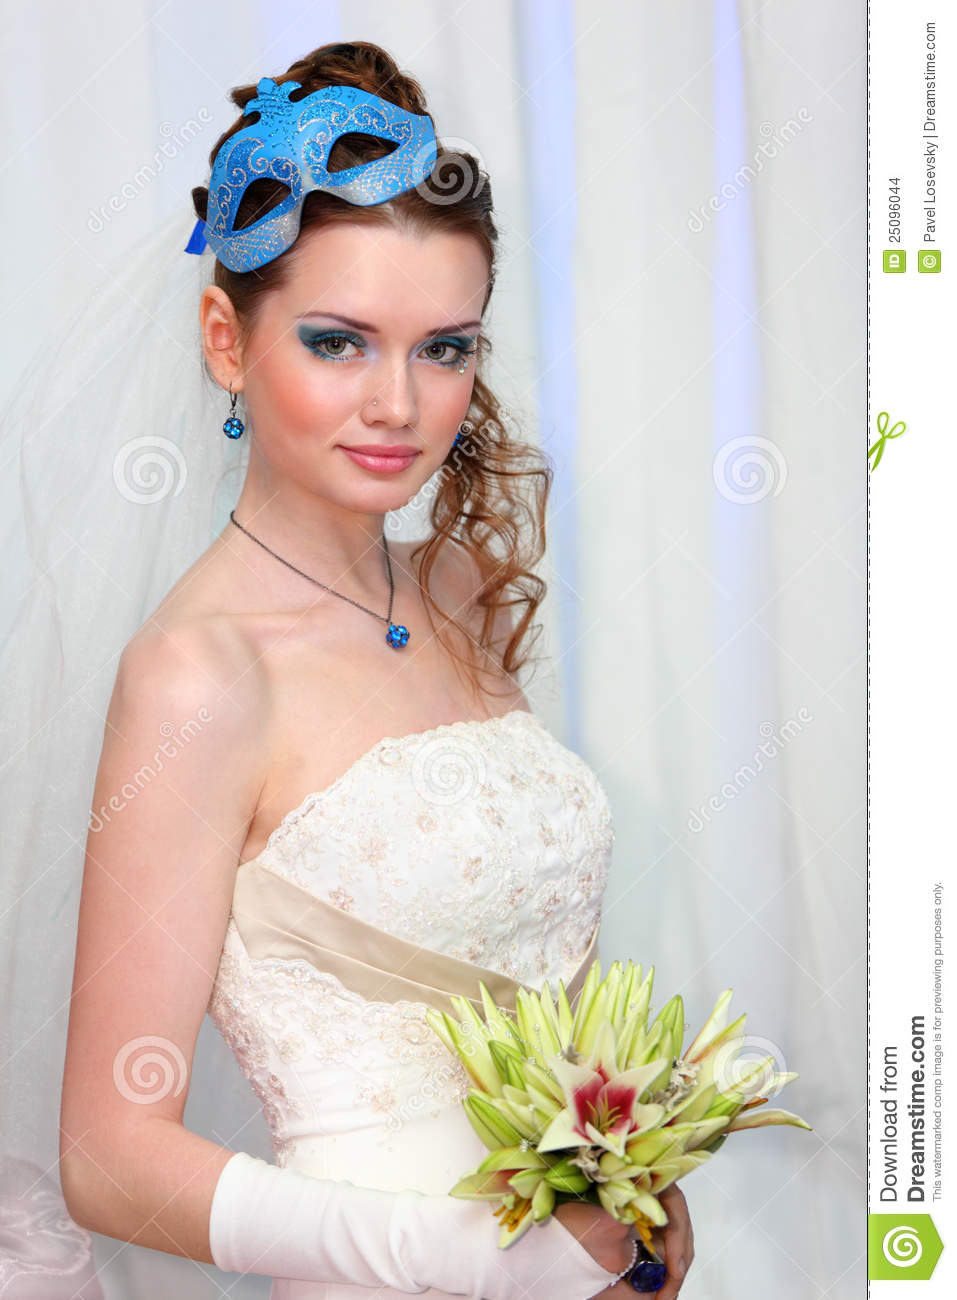 White Dress Bridal Makeup : Bride Wearing In White Dress With Blue Makeup Stock Images ...